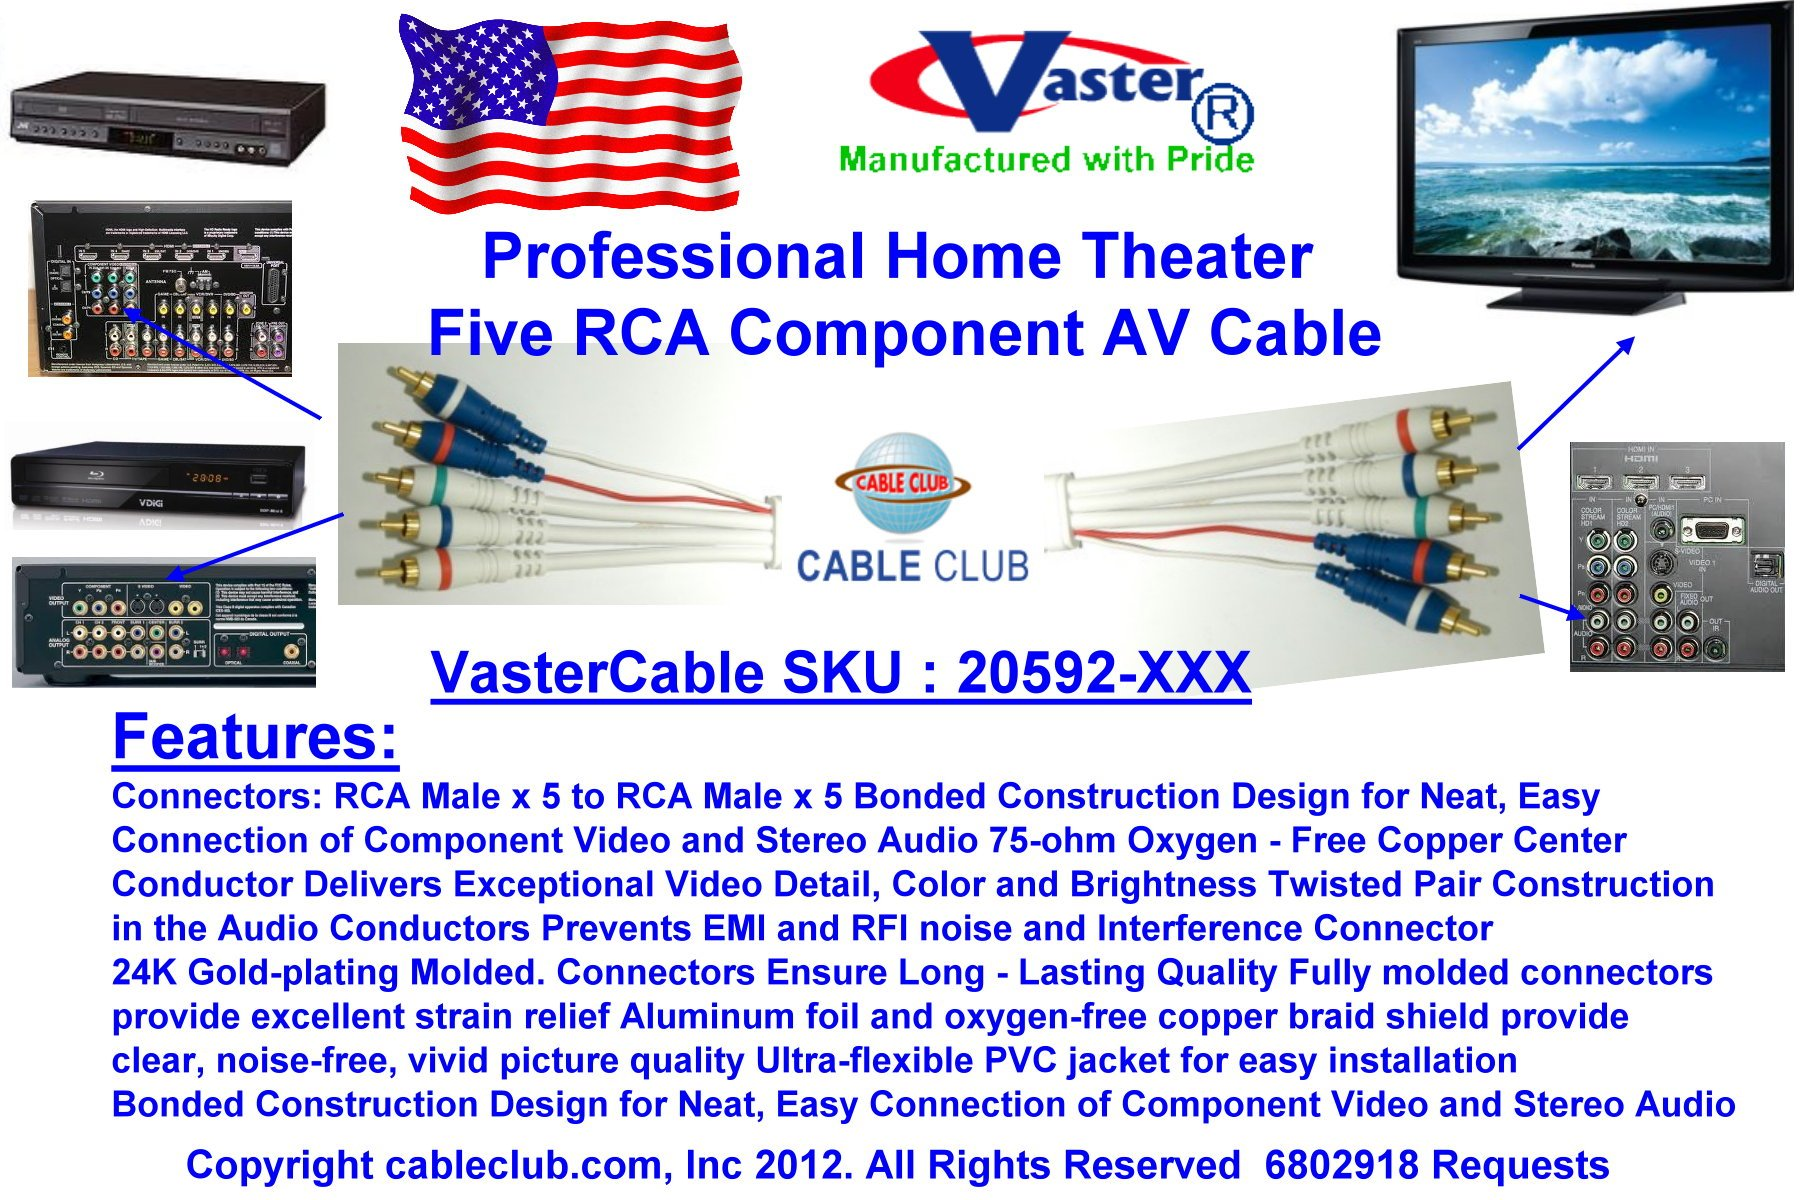 SuperEcable - 100 Ft, Professional Home Theater 5 RCA Component Audio & Video Cable by Vaster